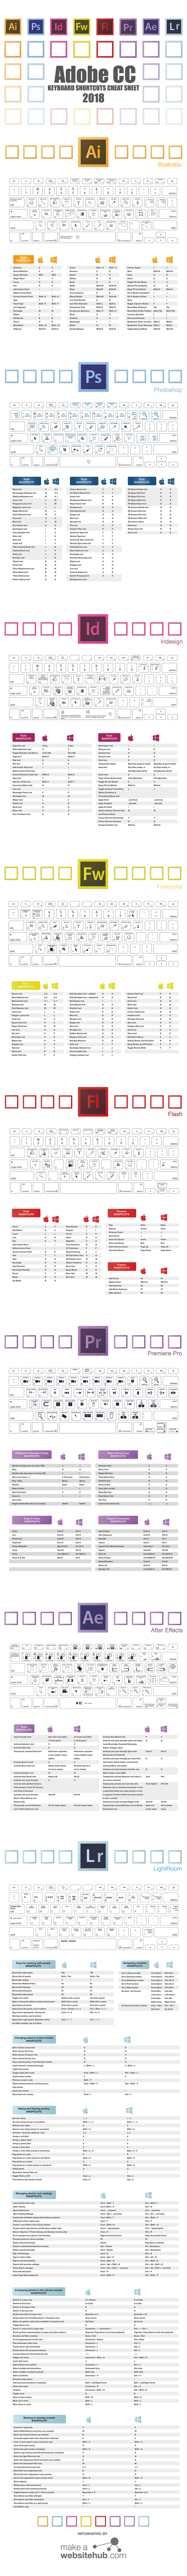 windows 7 keyboard shortcuts pdf free download